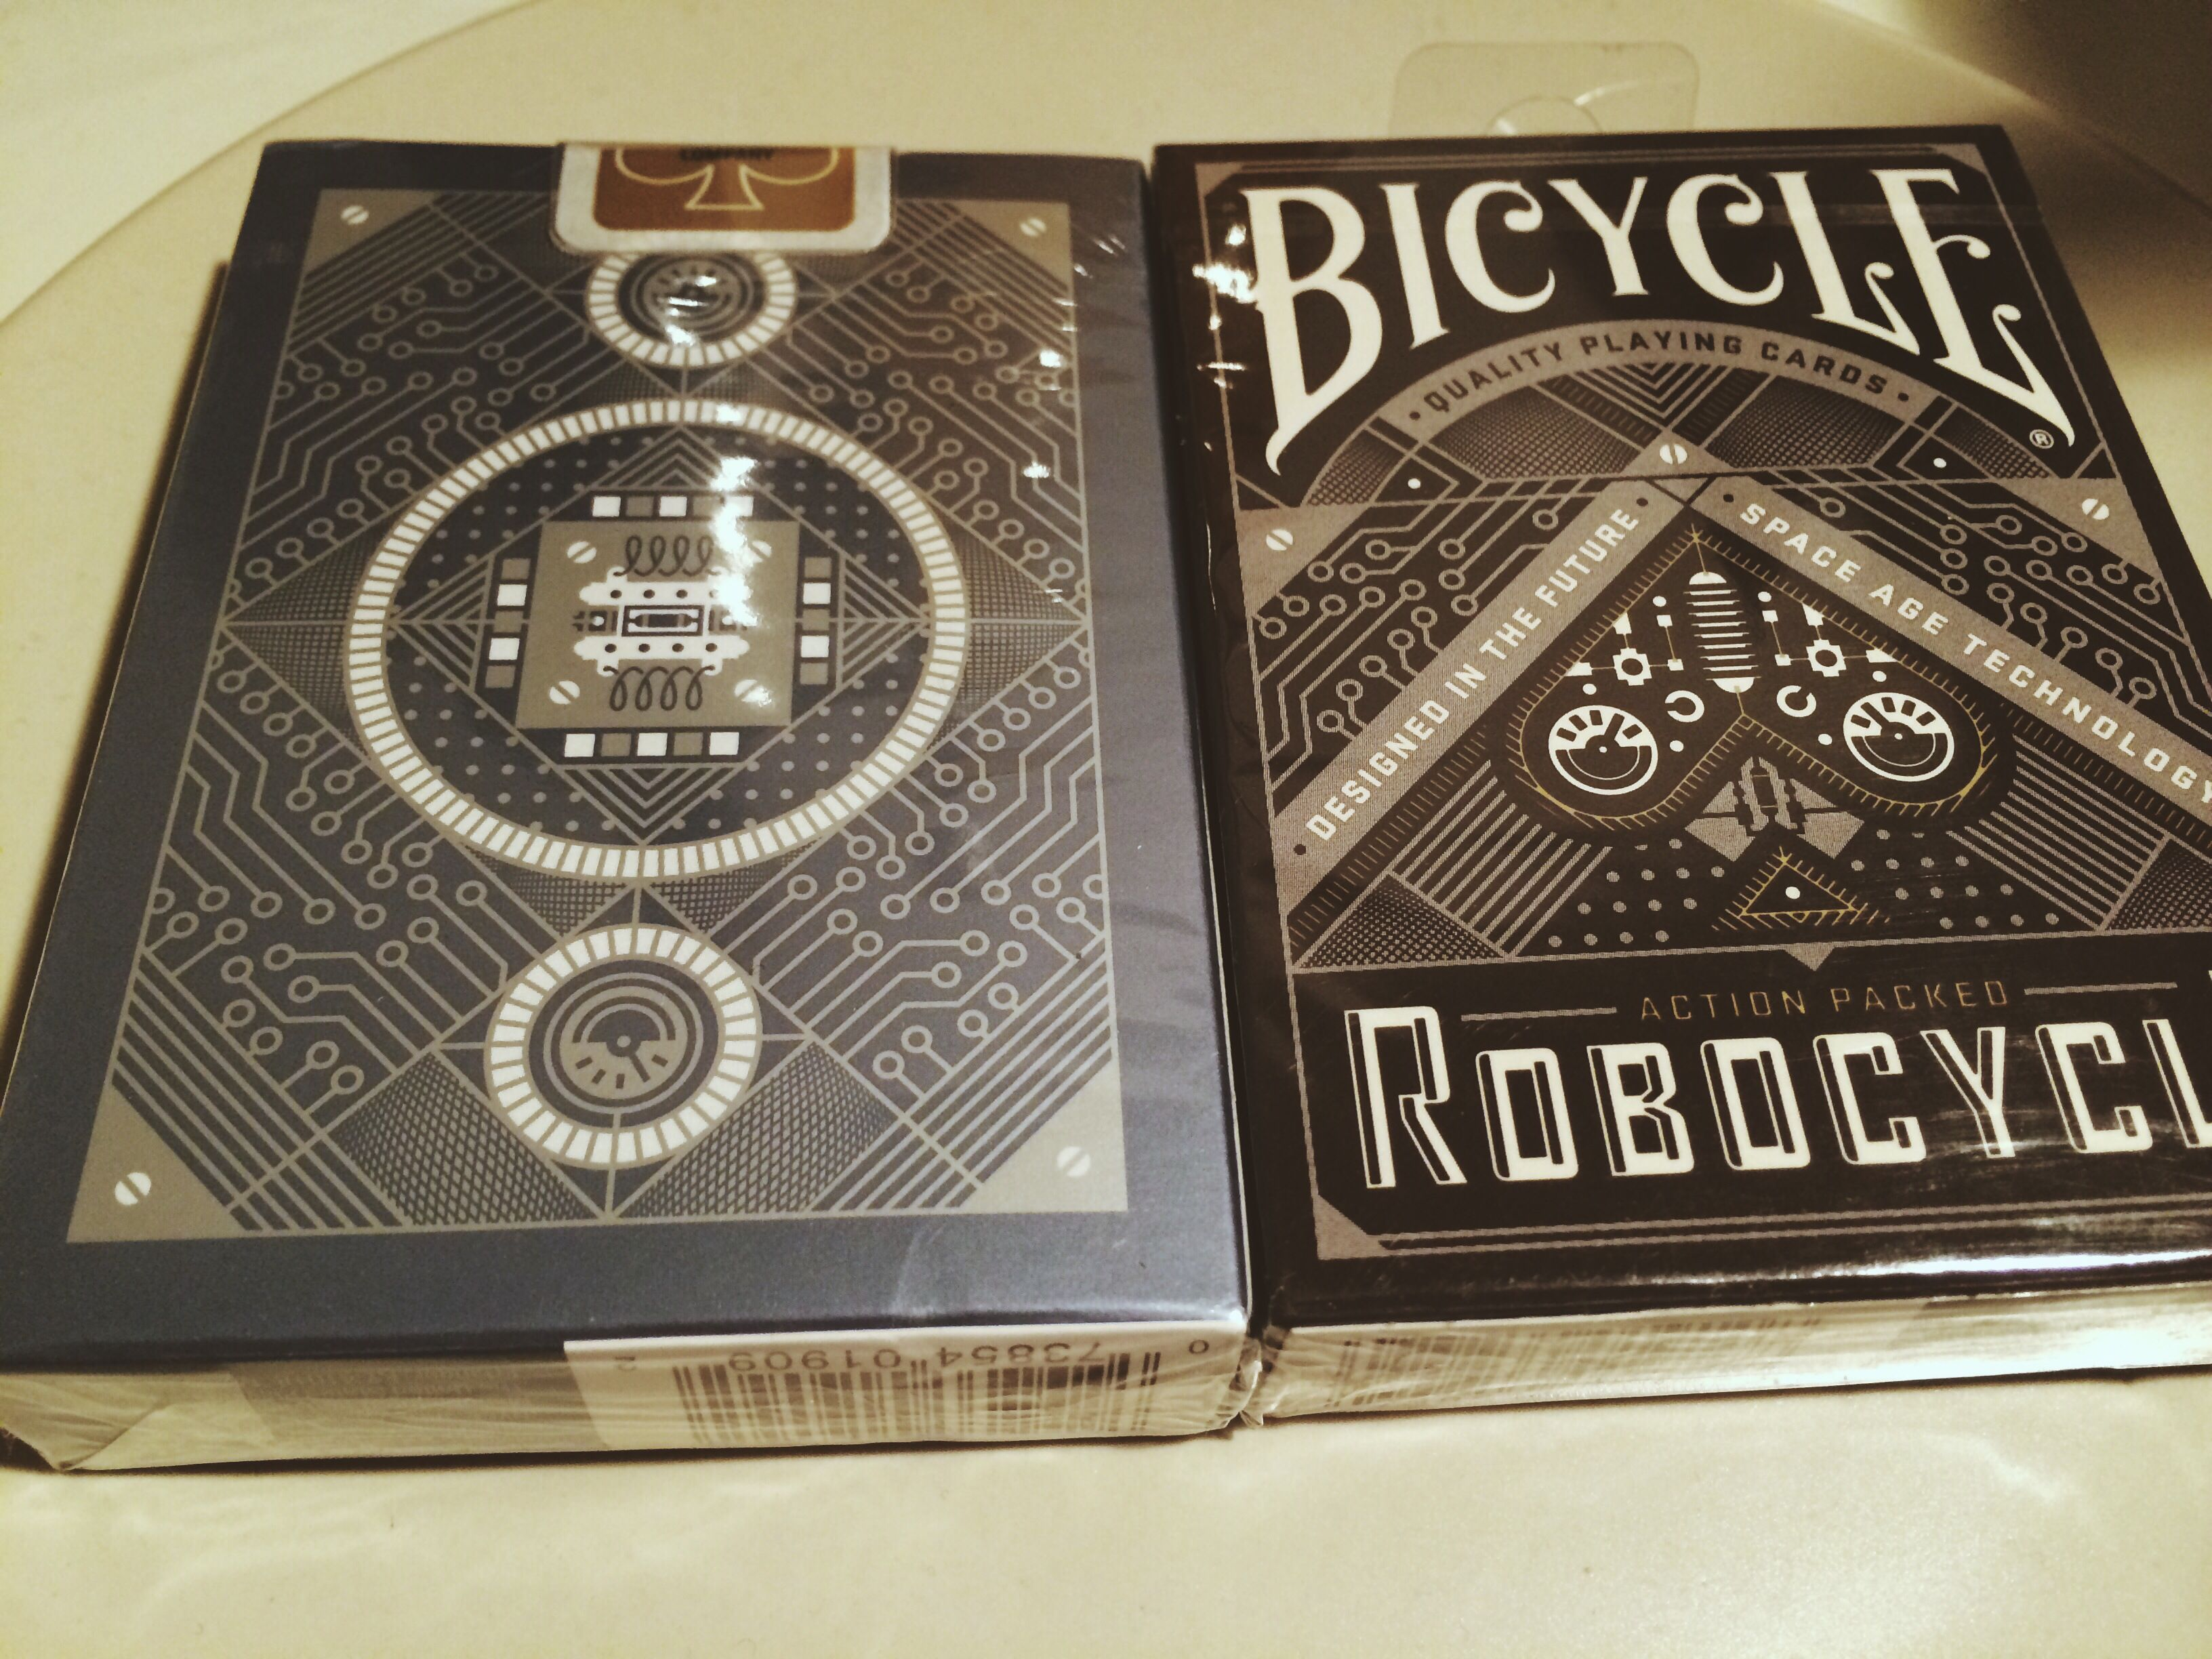 robocycle deck front & back